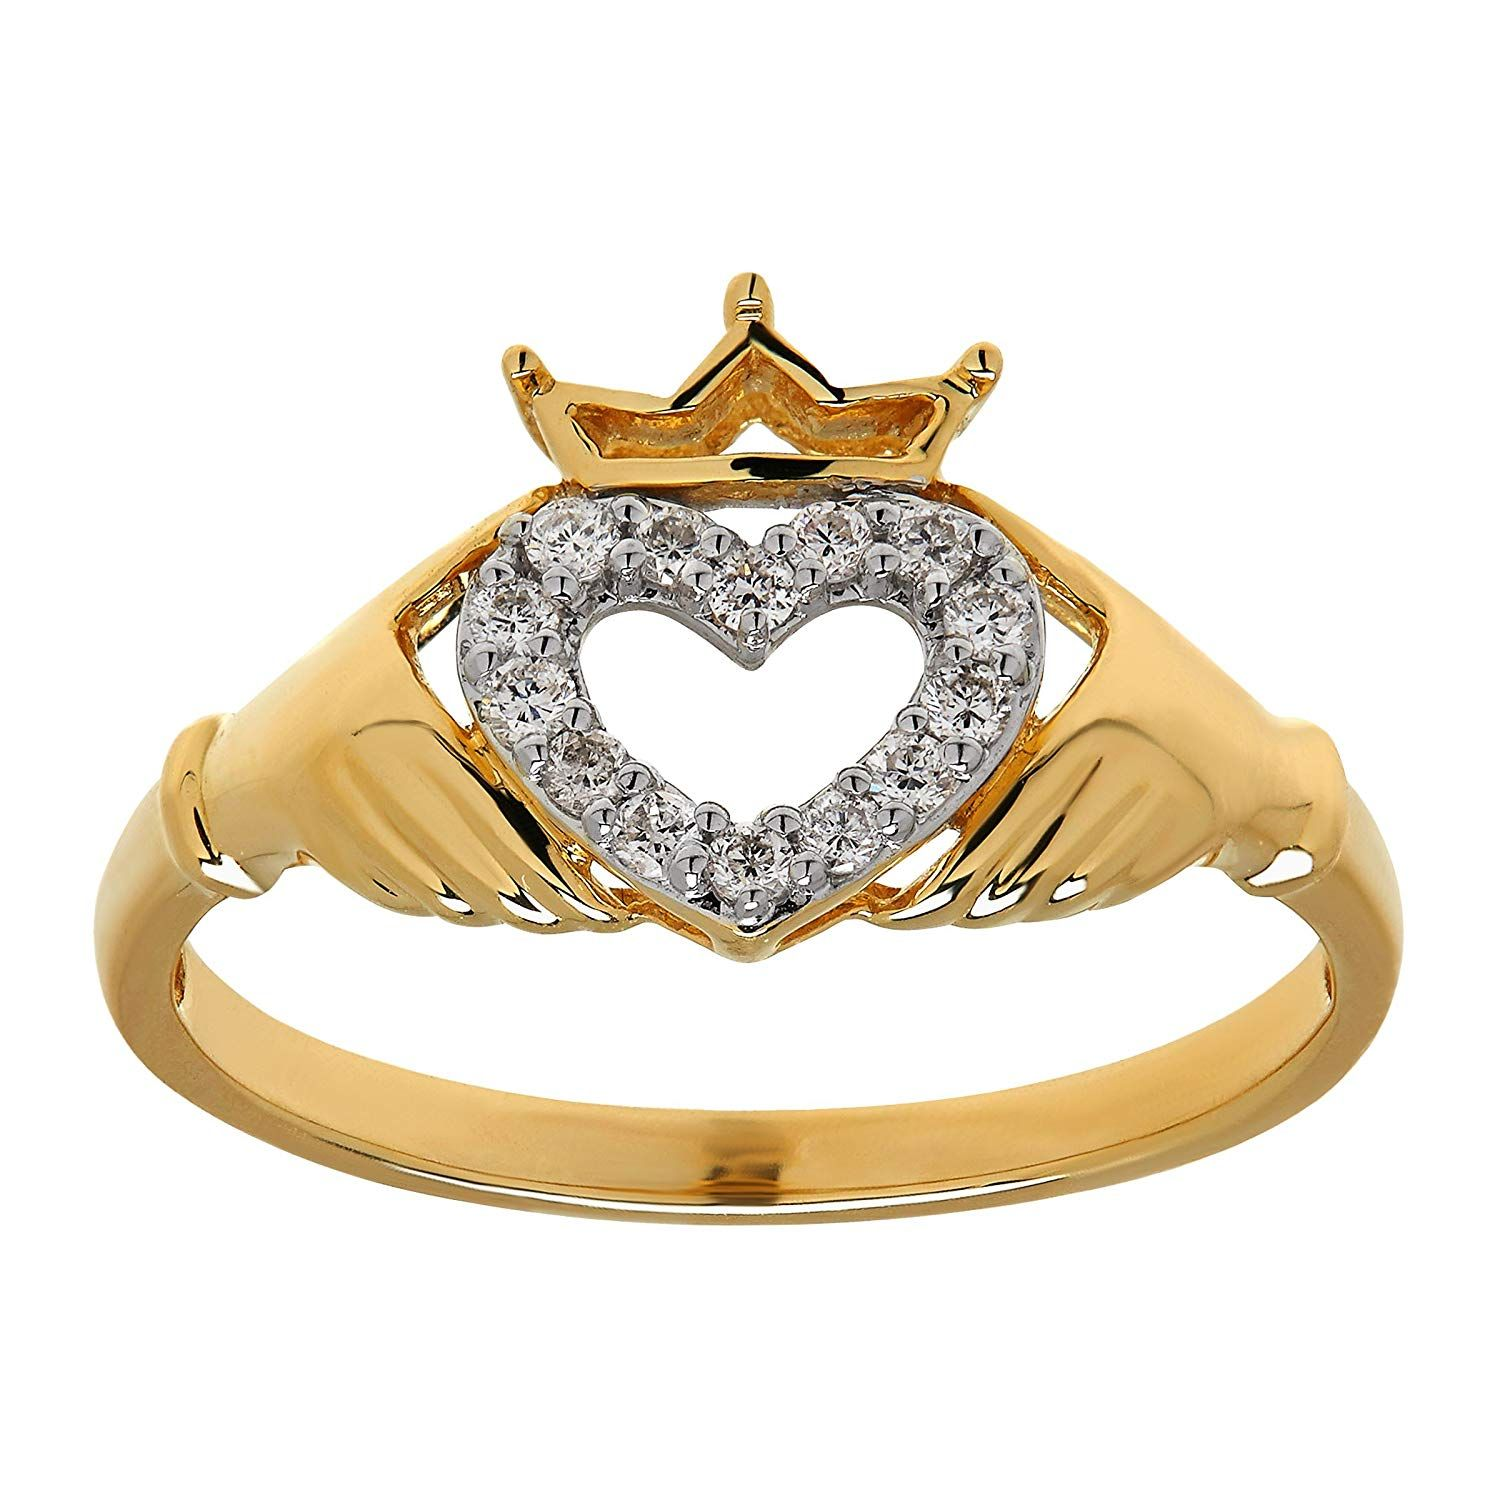 1/8 ct Diamond Claddagh Heart Ring in 14K Gold >>> You can